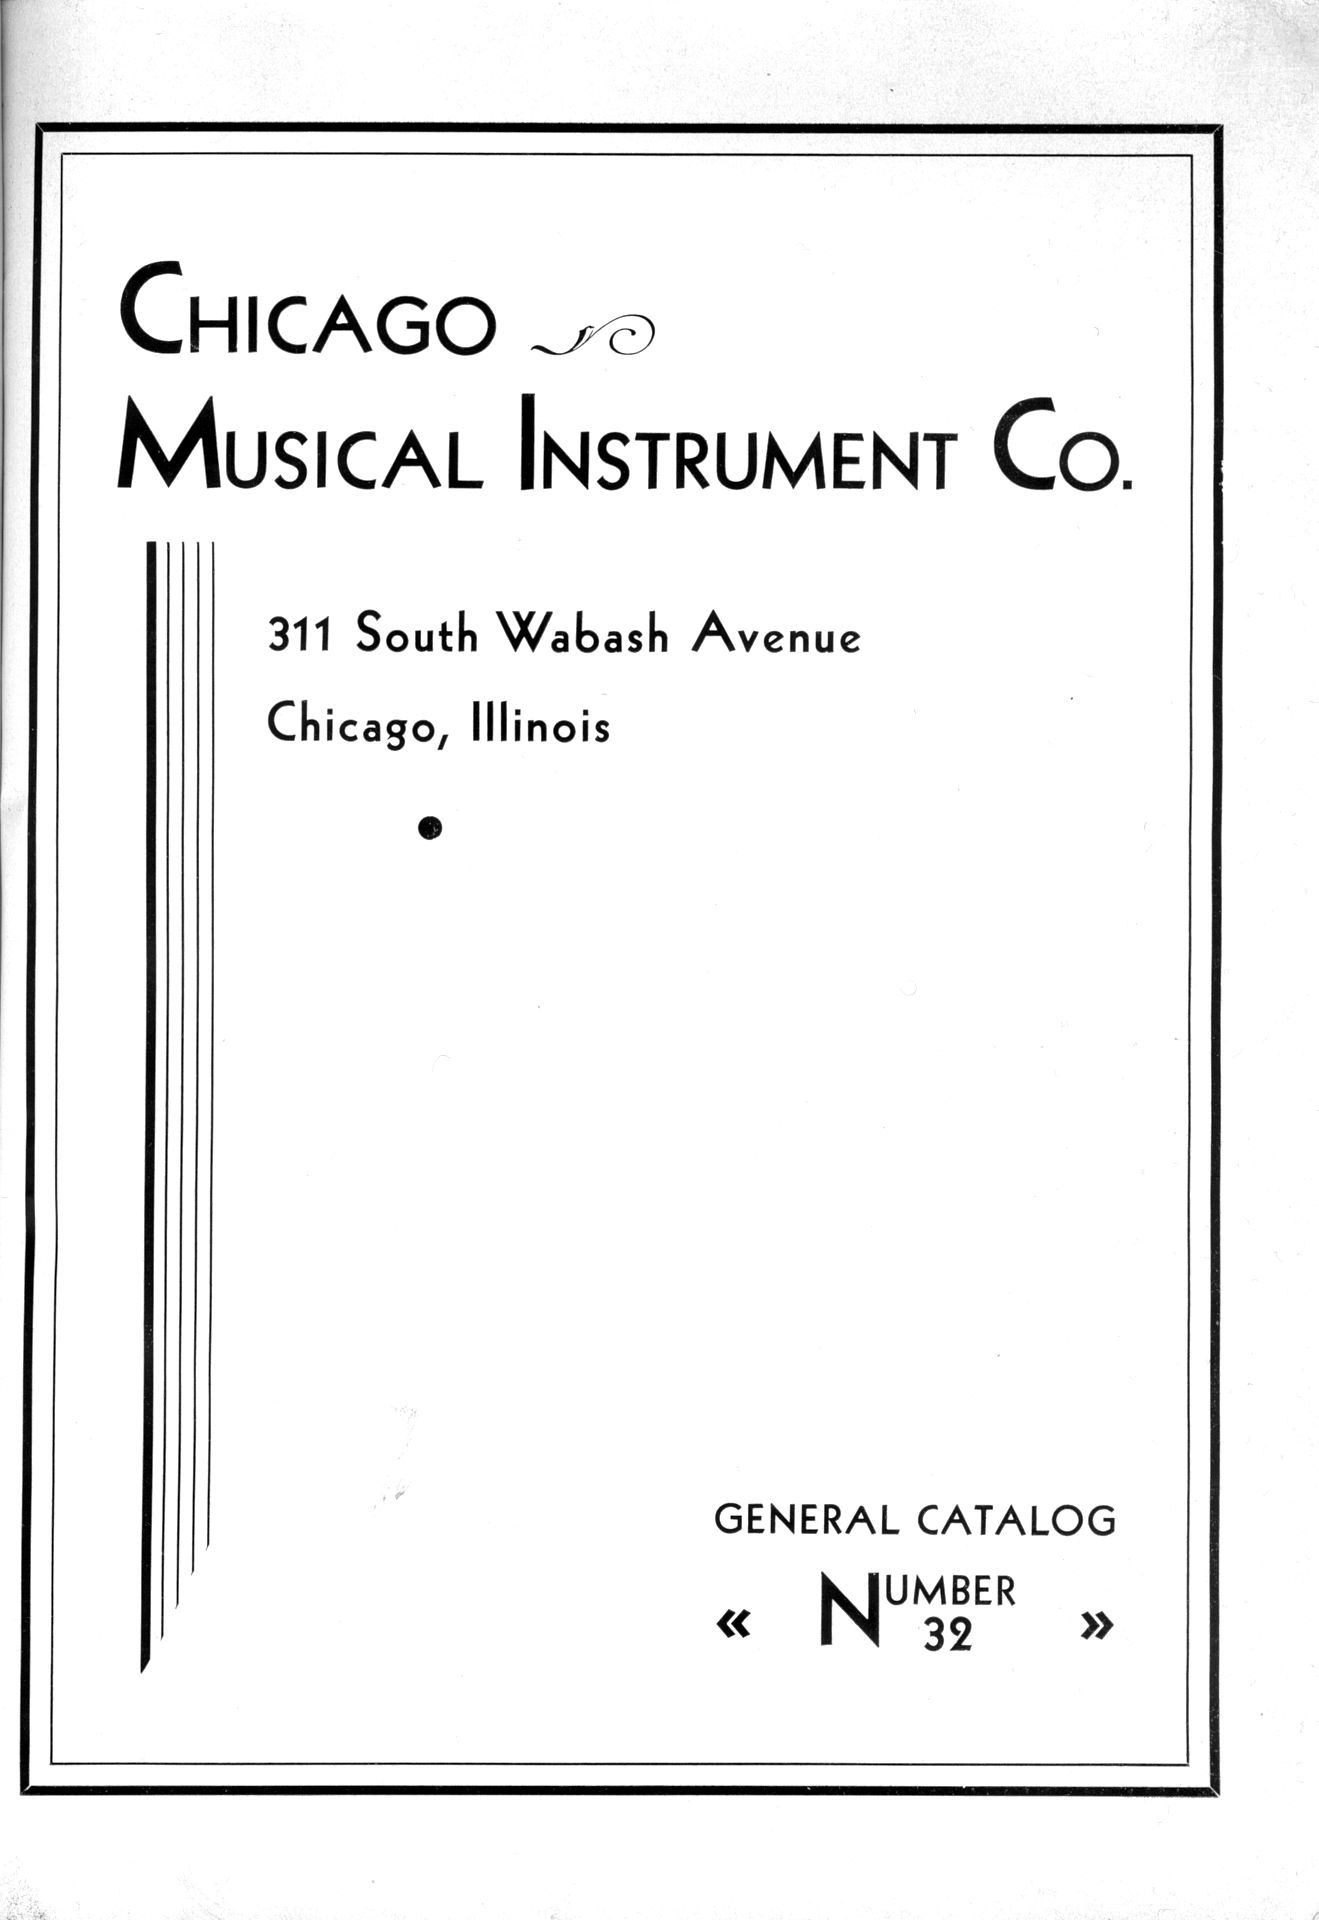 the chicago musical instrument co. | the bassic sax blog